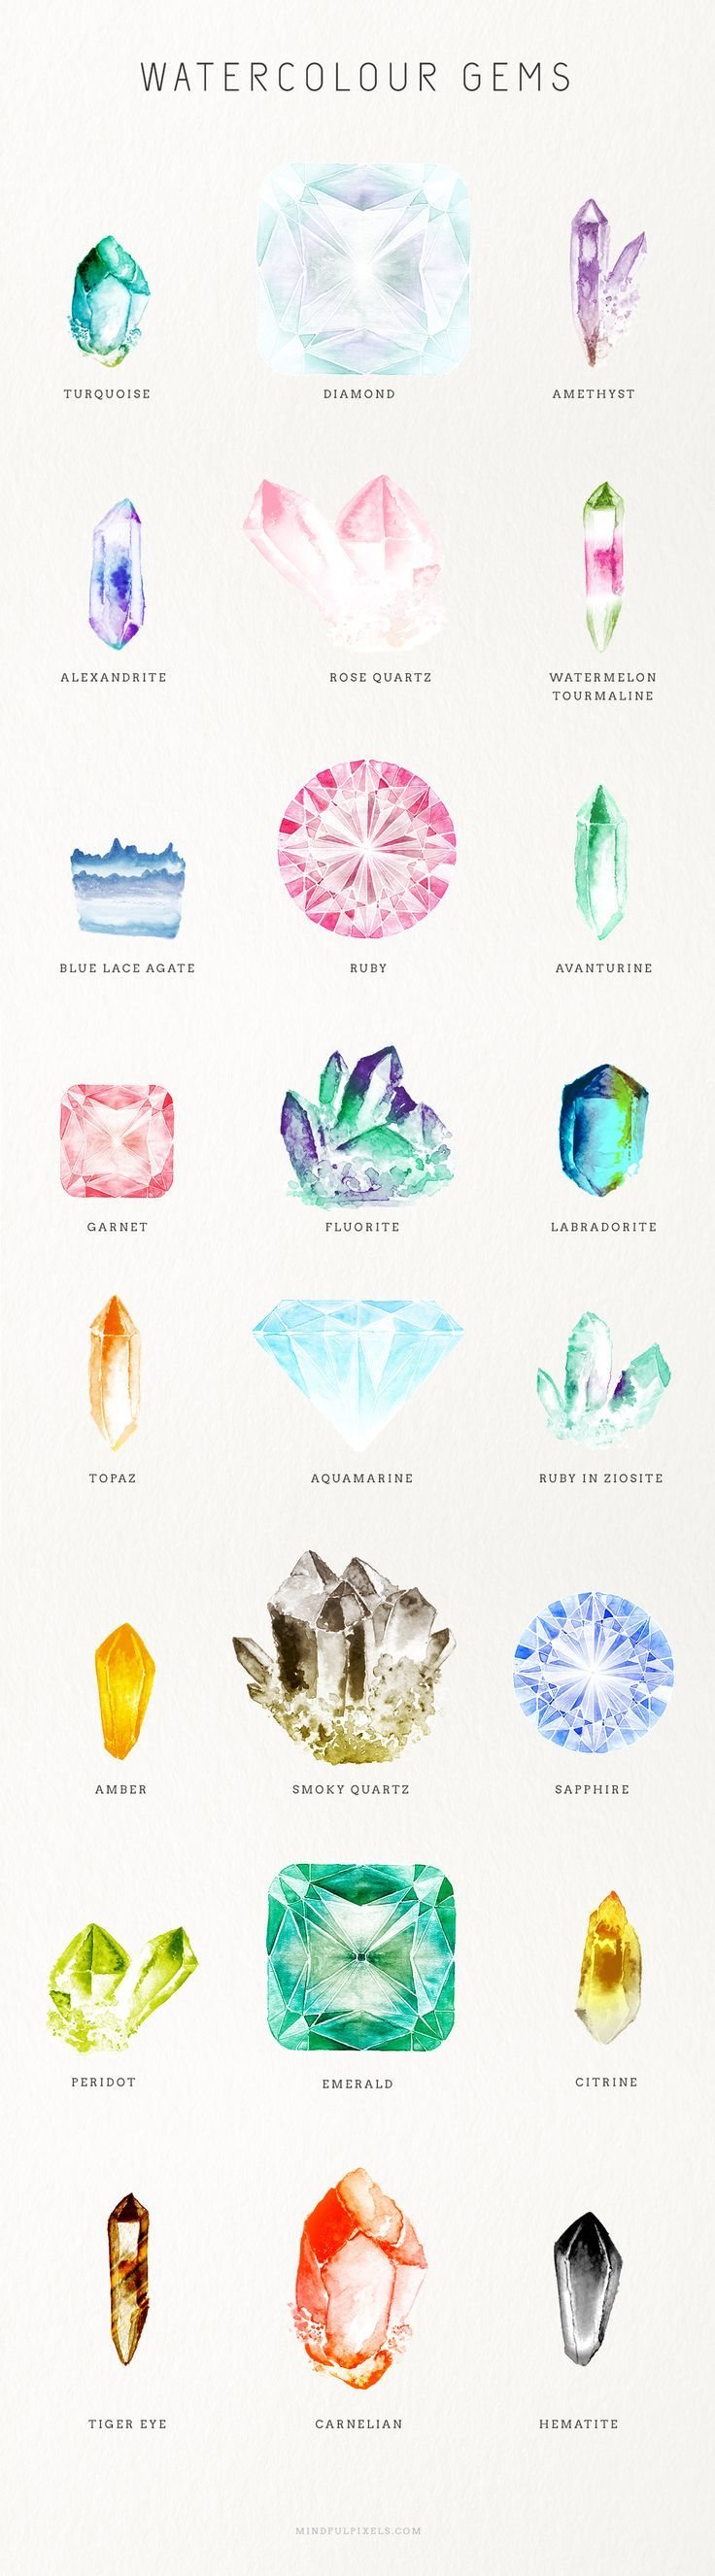 Watercolor gems